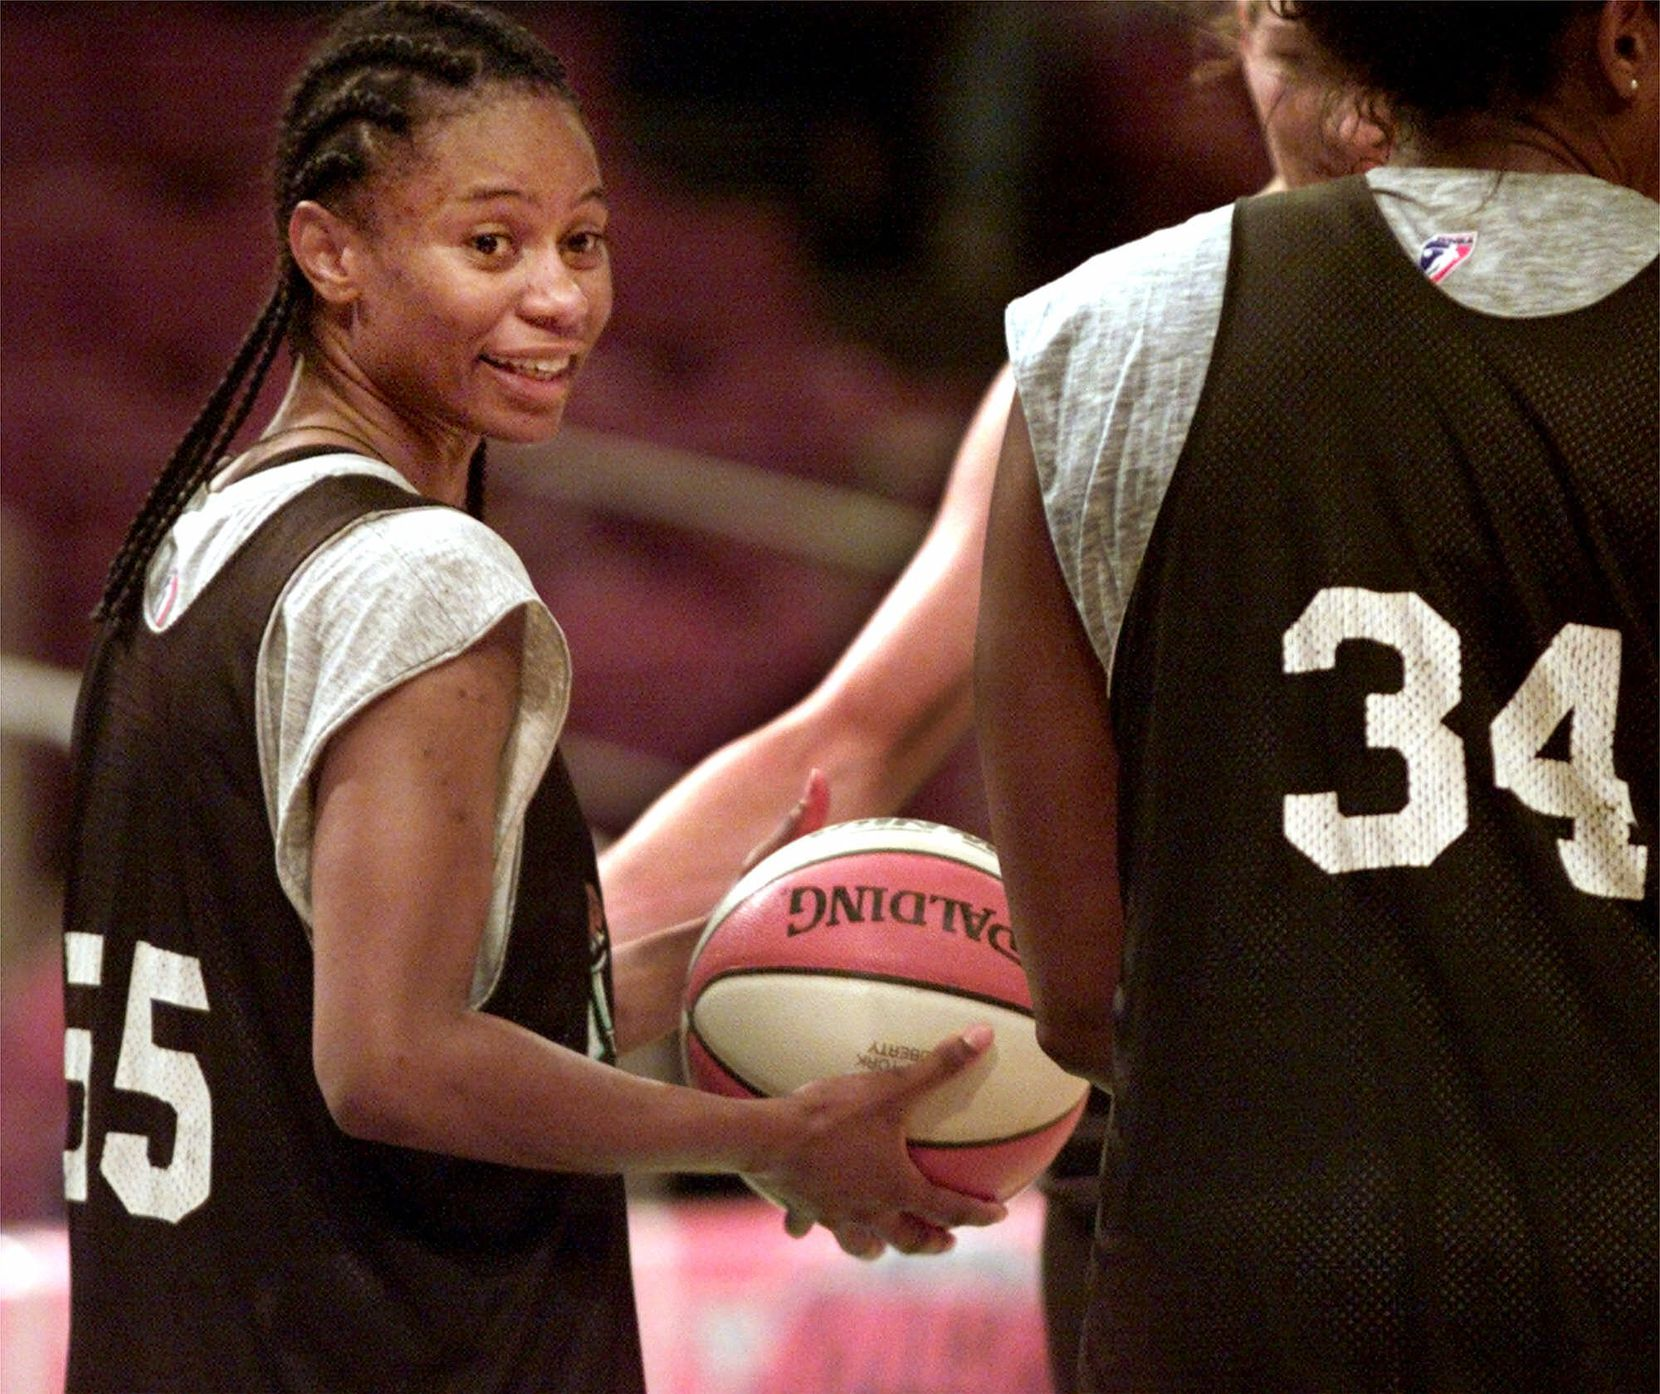 The New York Liberty's leading scorer Vickie Johnson, left, talks to teammate Kym Hampton (34) during the team's practice, Tuesday, Aug. 24, 1999, at New York's Madison Square Garden.